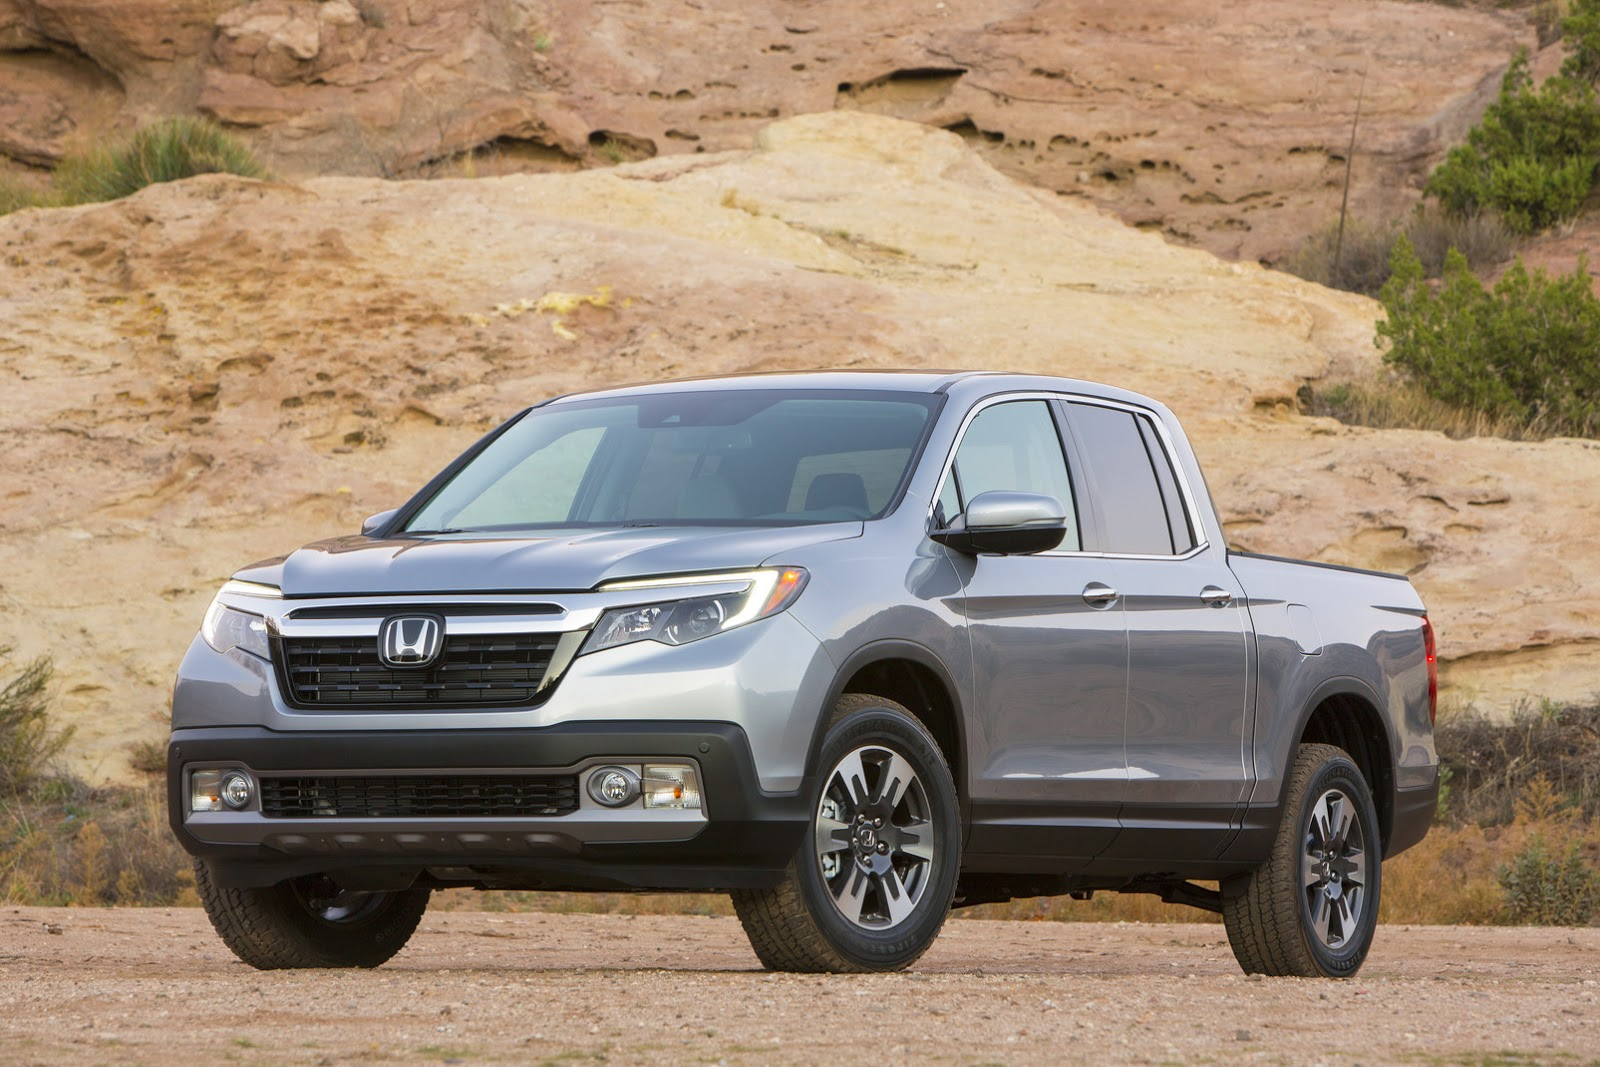 2017 Ridgeline Is Honda S New Soft Pickup Truck Updated